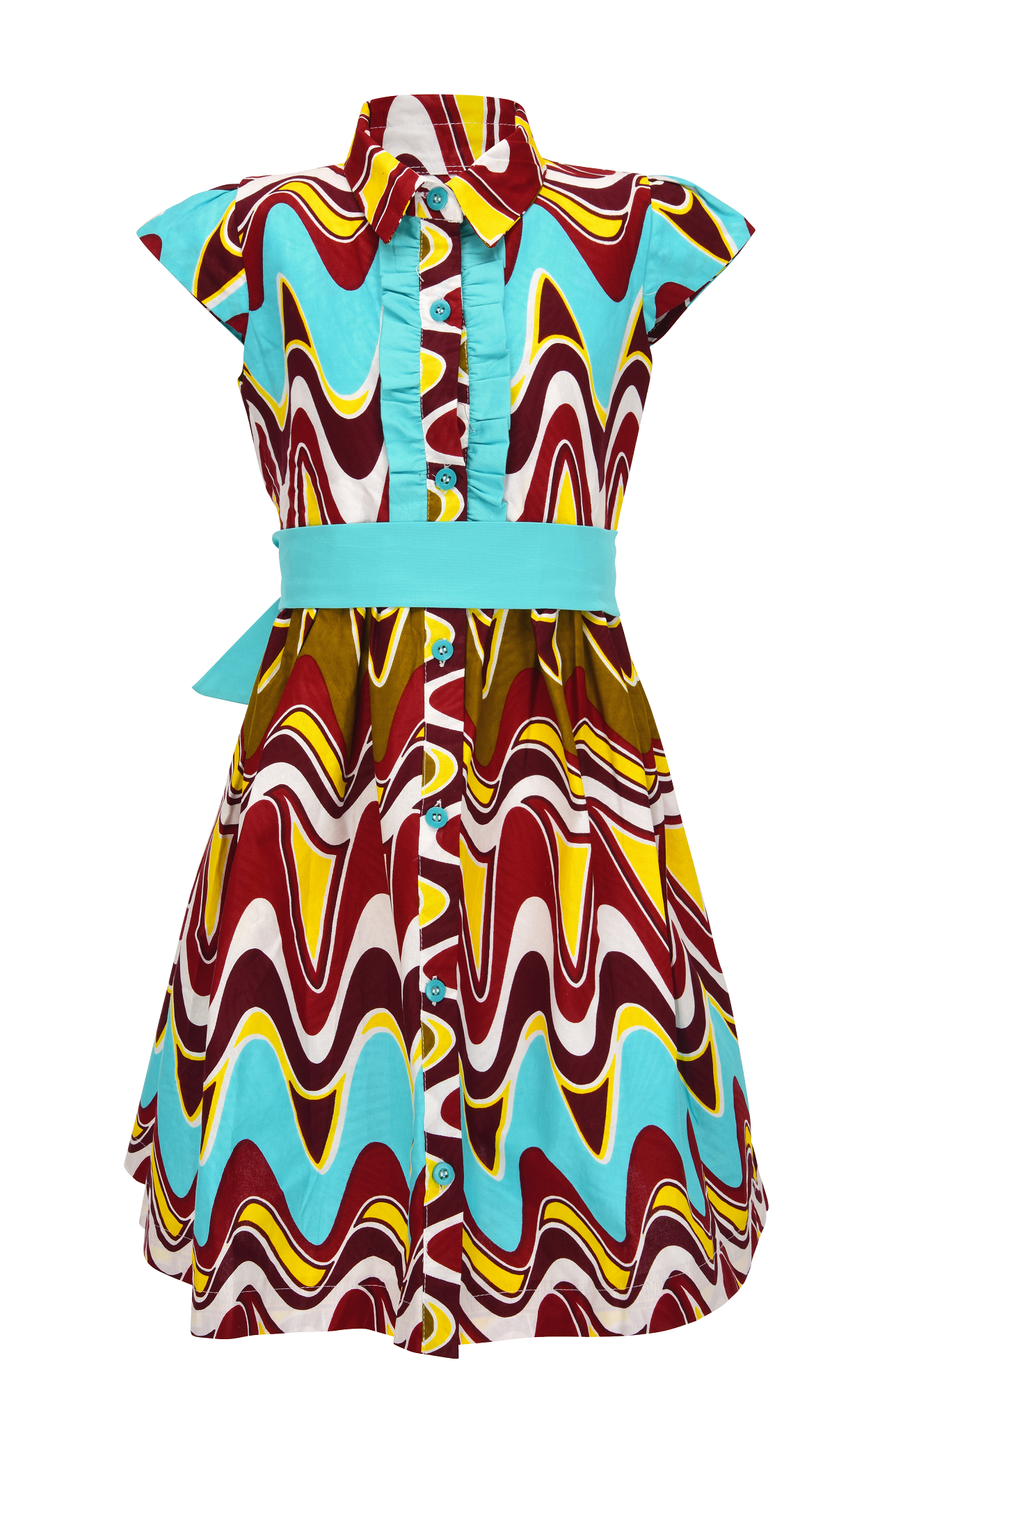 Sianou african Print dress for girls - yalinat